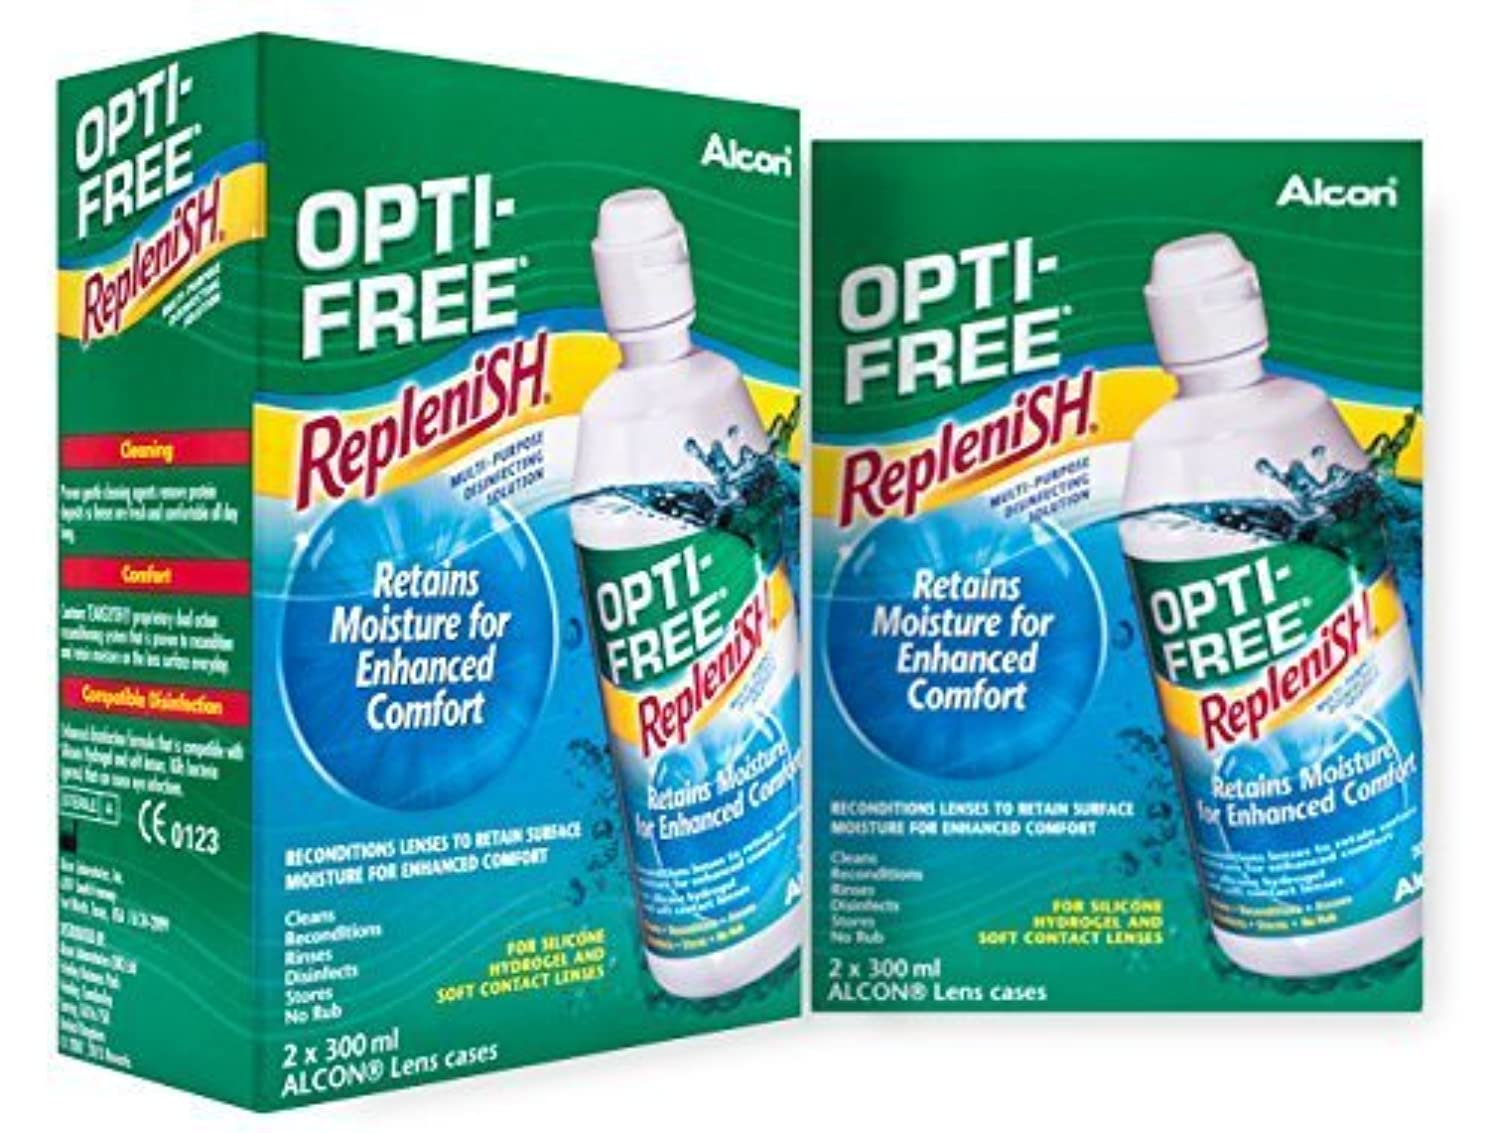 コメント優しさ家族Alcon Opti-Free Replenish Contact Lens Solution 4x300ml 6 mths supply by Alcon